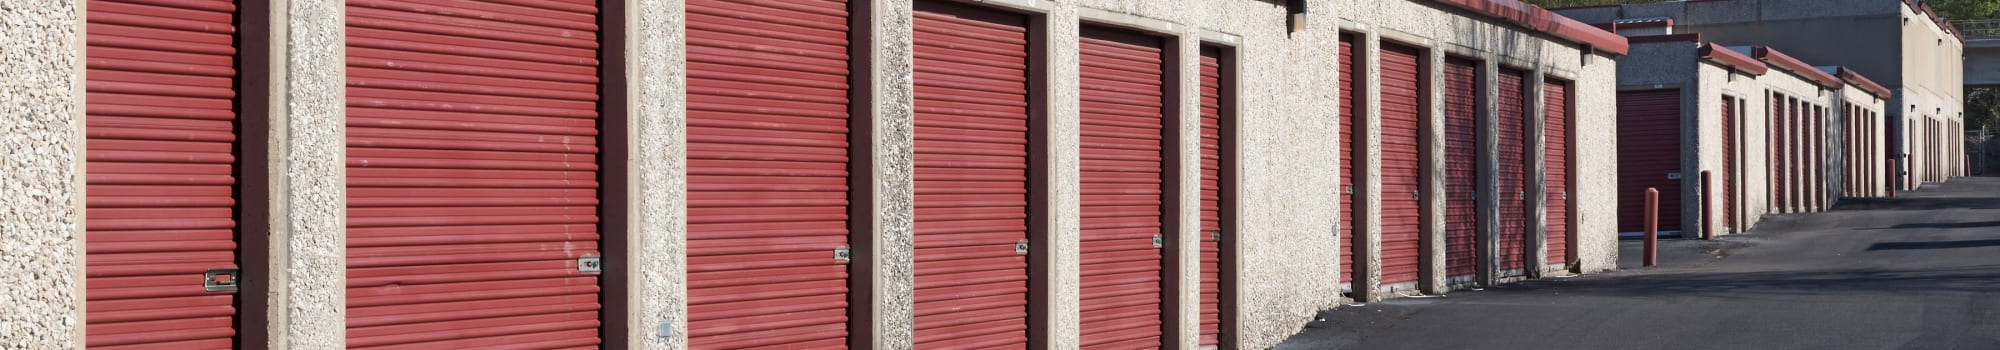 Self storage units at Self Storage Plus in Alexandria, Virginia